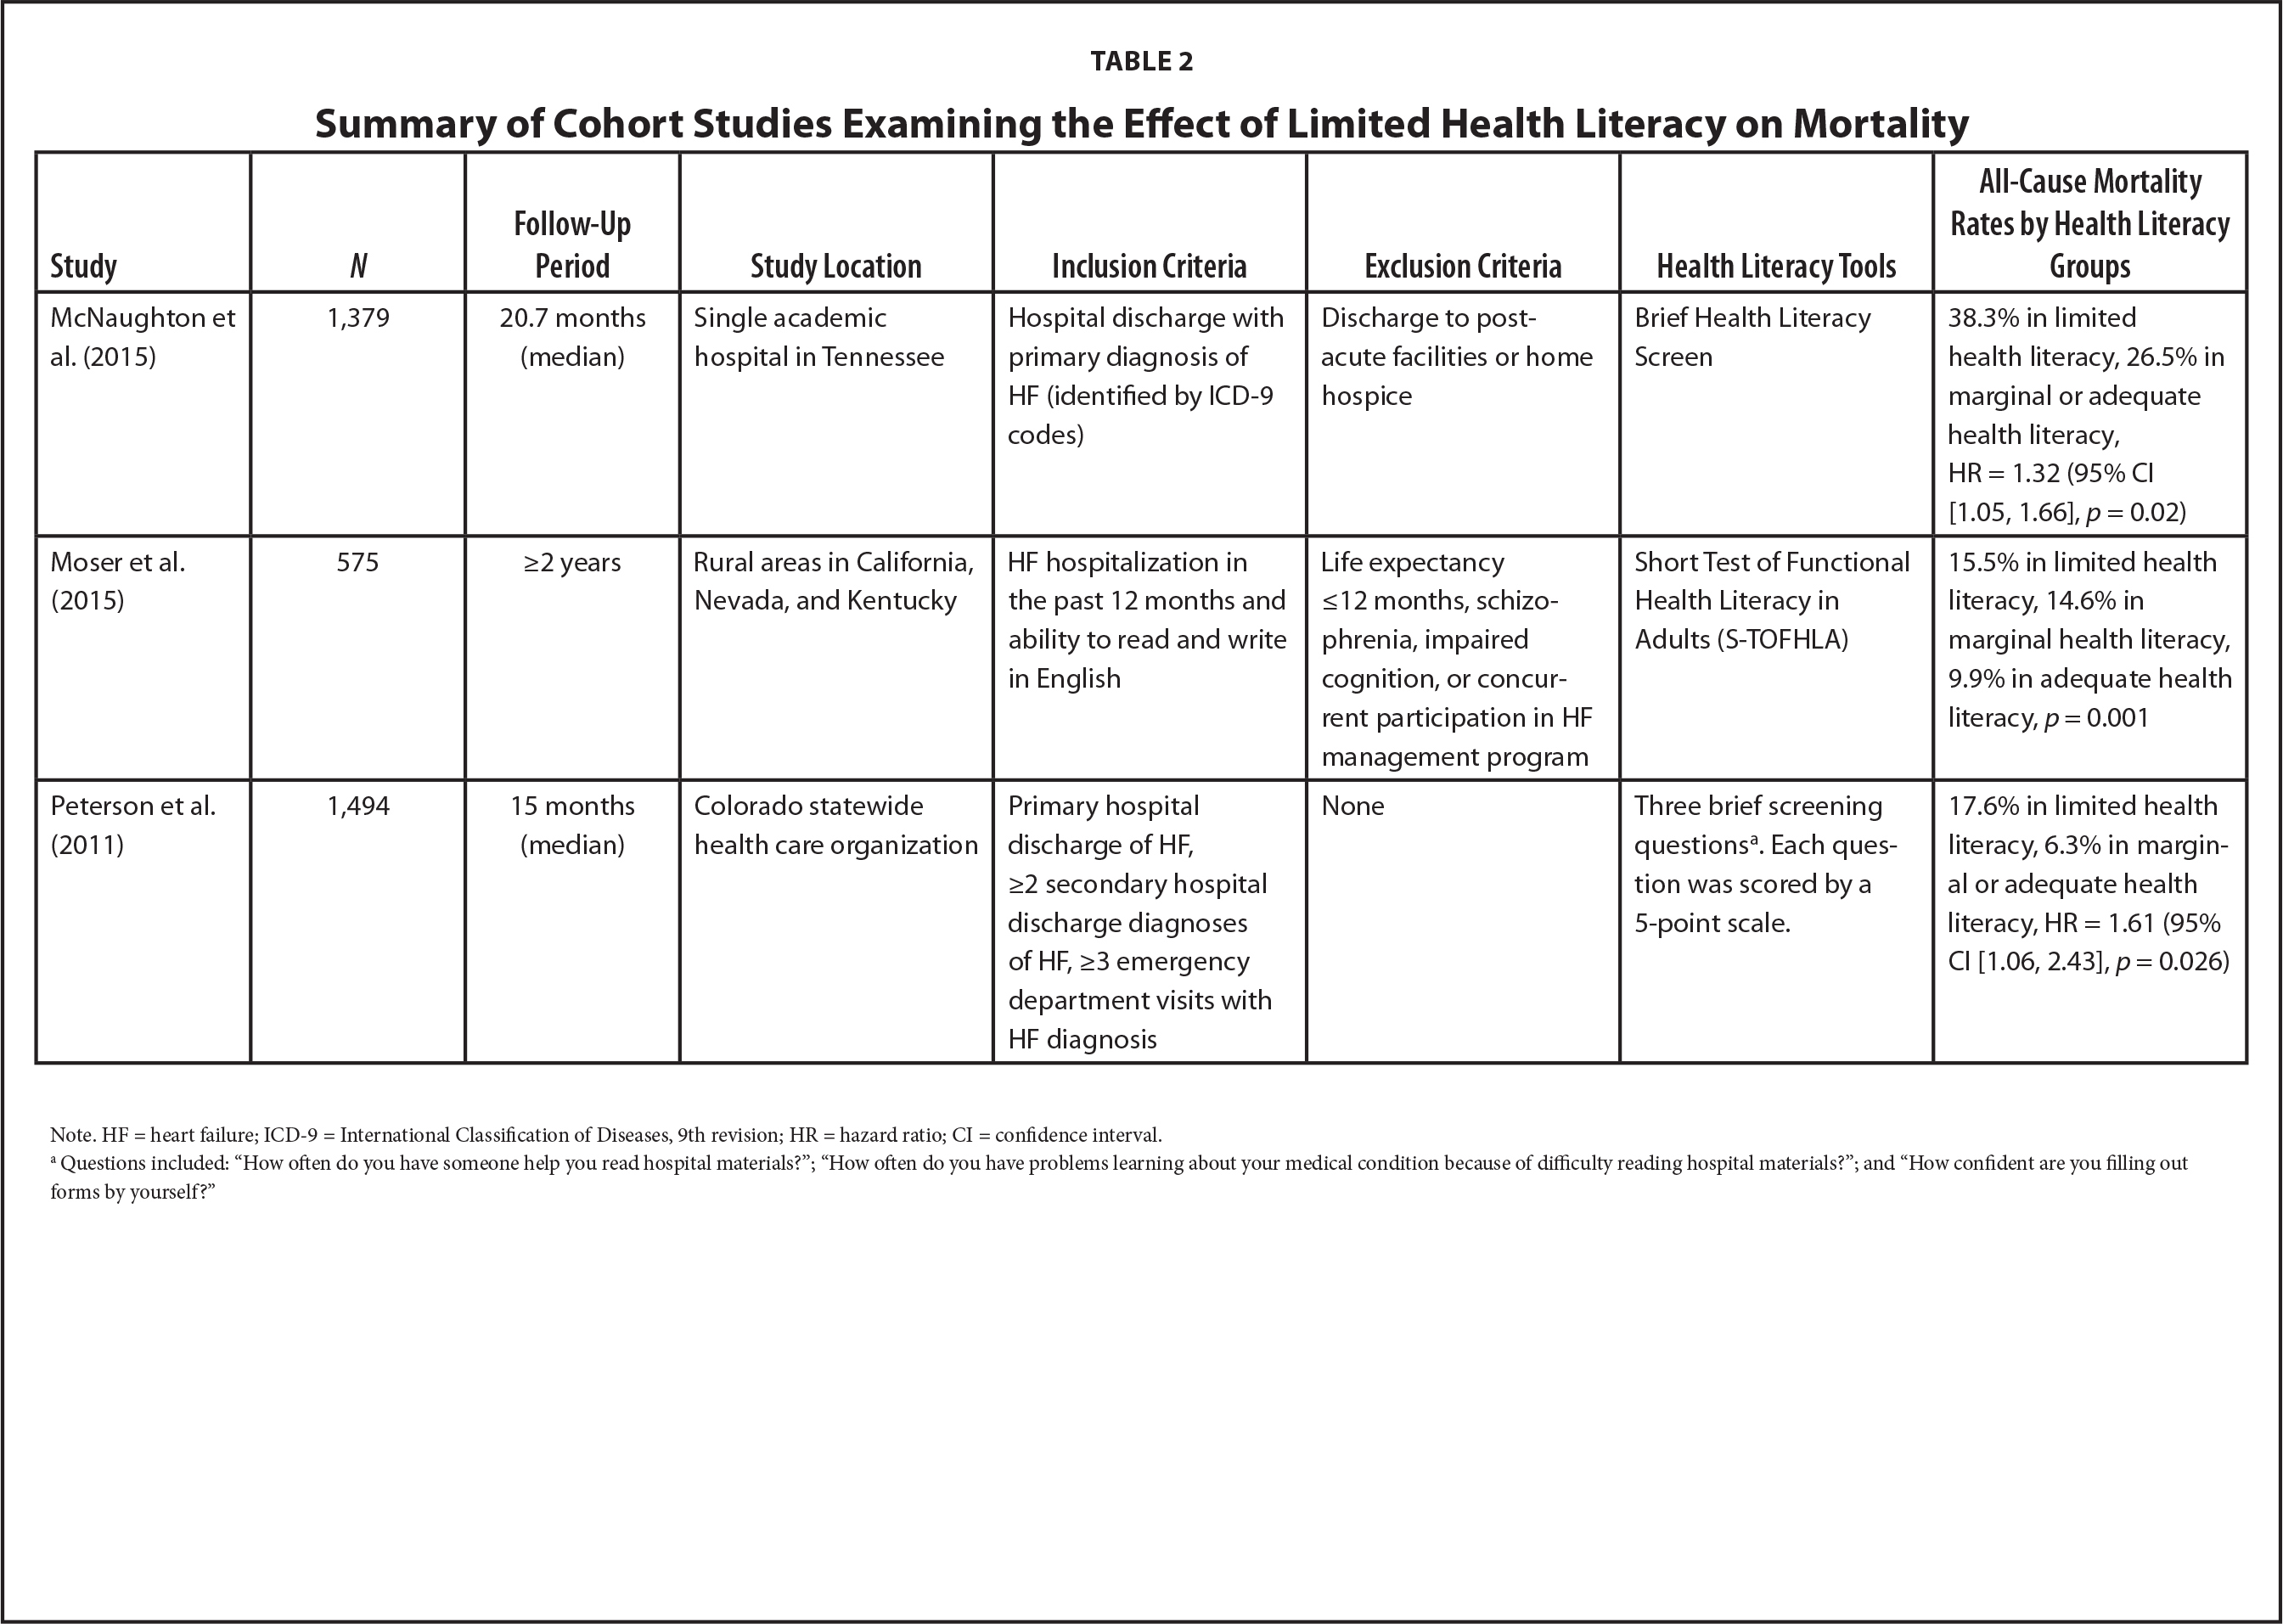 Summary of Cohort Studies Examining the Effect of Limited Health Literacy on Mortality